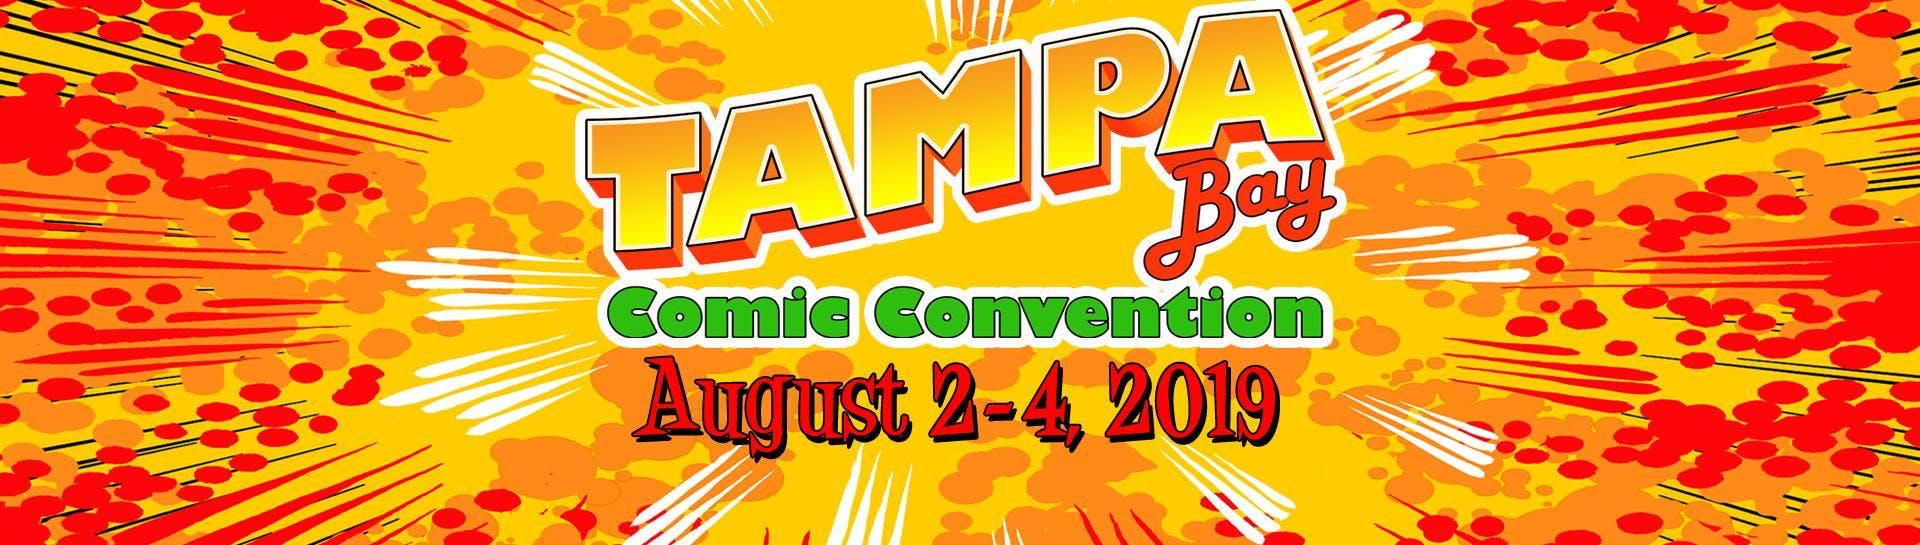 Tampa Bay Comic Con - August 2-4, 2019, Tampa FL - Aug 2